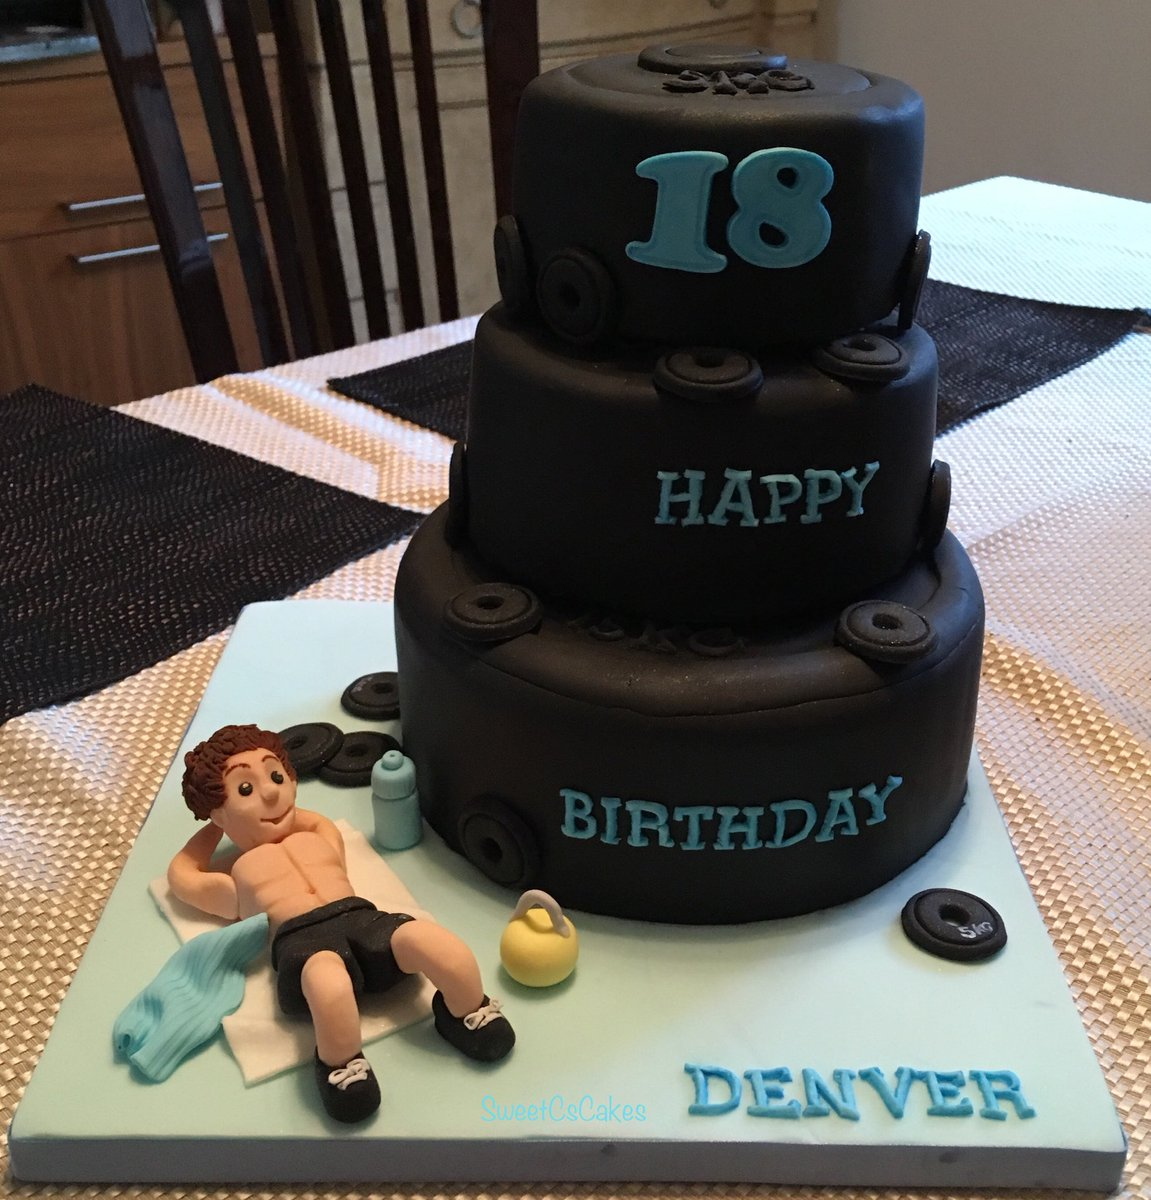 Gym Themed 18th Birthday Cake Xx 18 Chocolateorange Buttercreampictwitter UjApTw8LmN